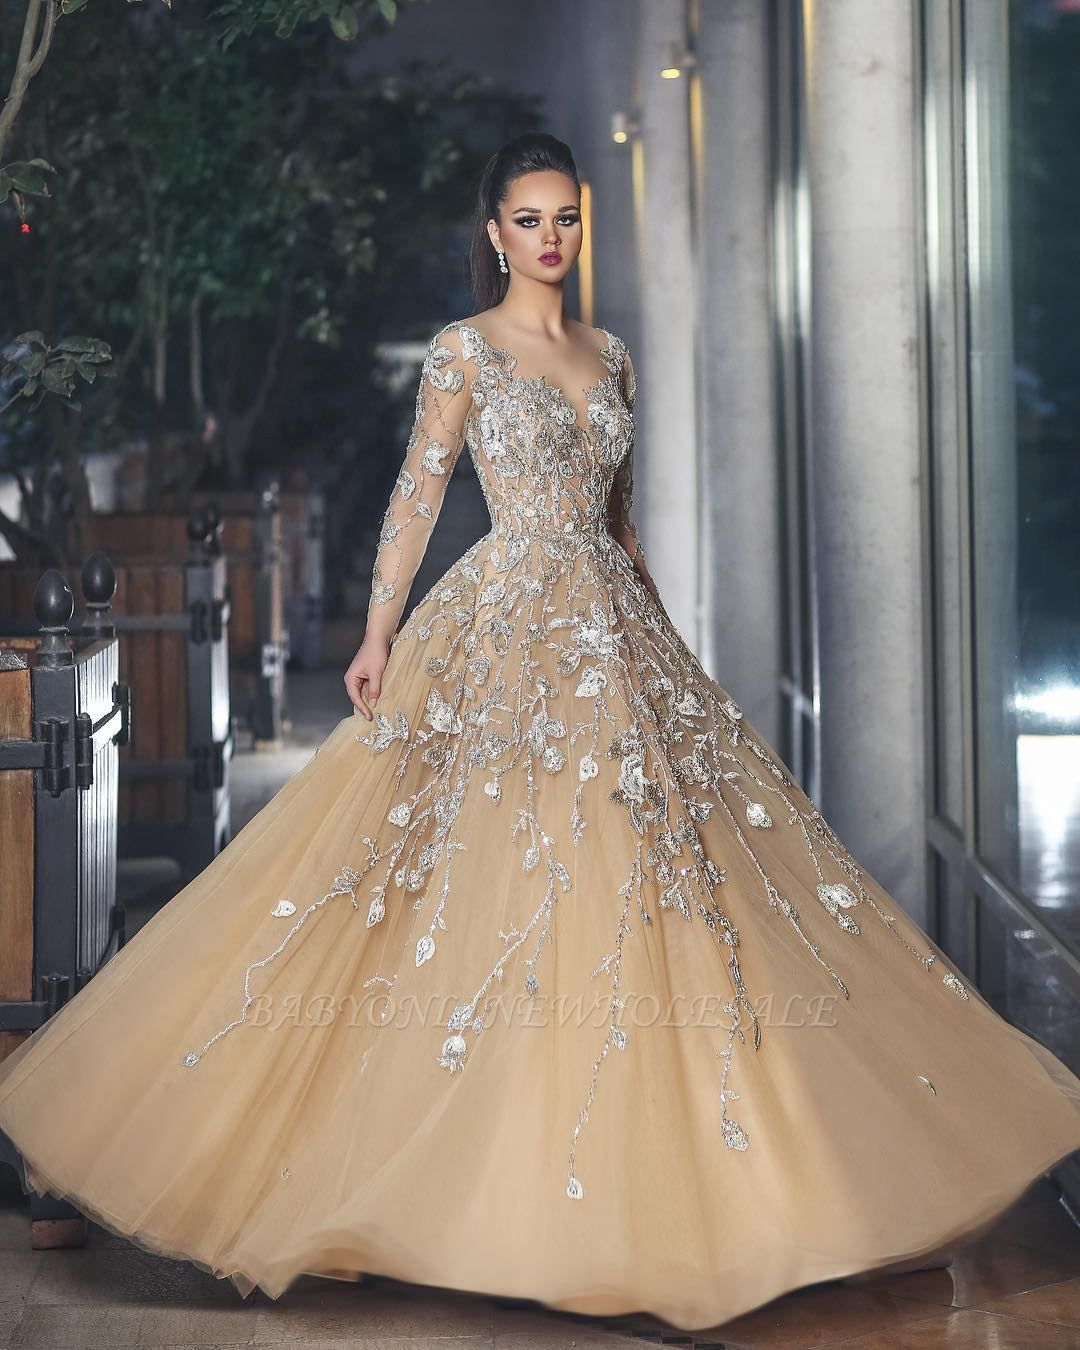 a5f5c7f643b Glamorous Long Sleeve Evening Dress Tulle With Lace Appliques BA8501 ...